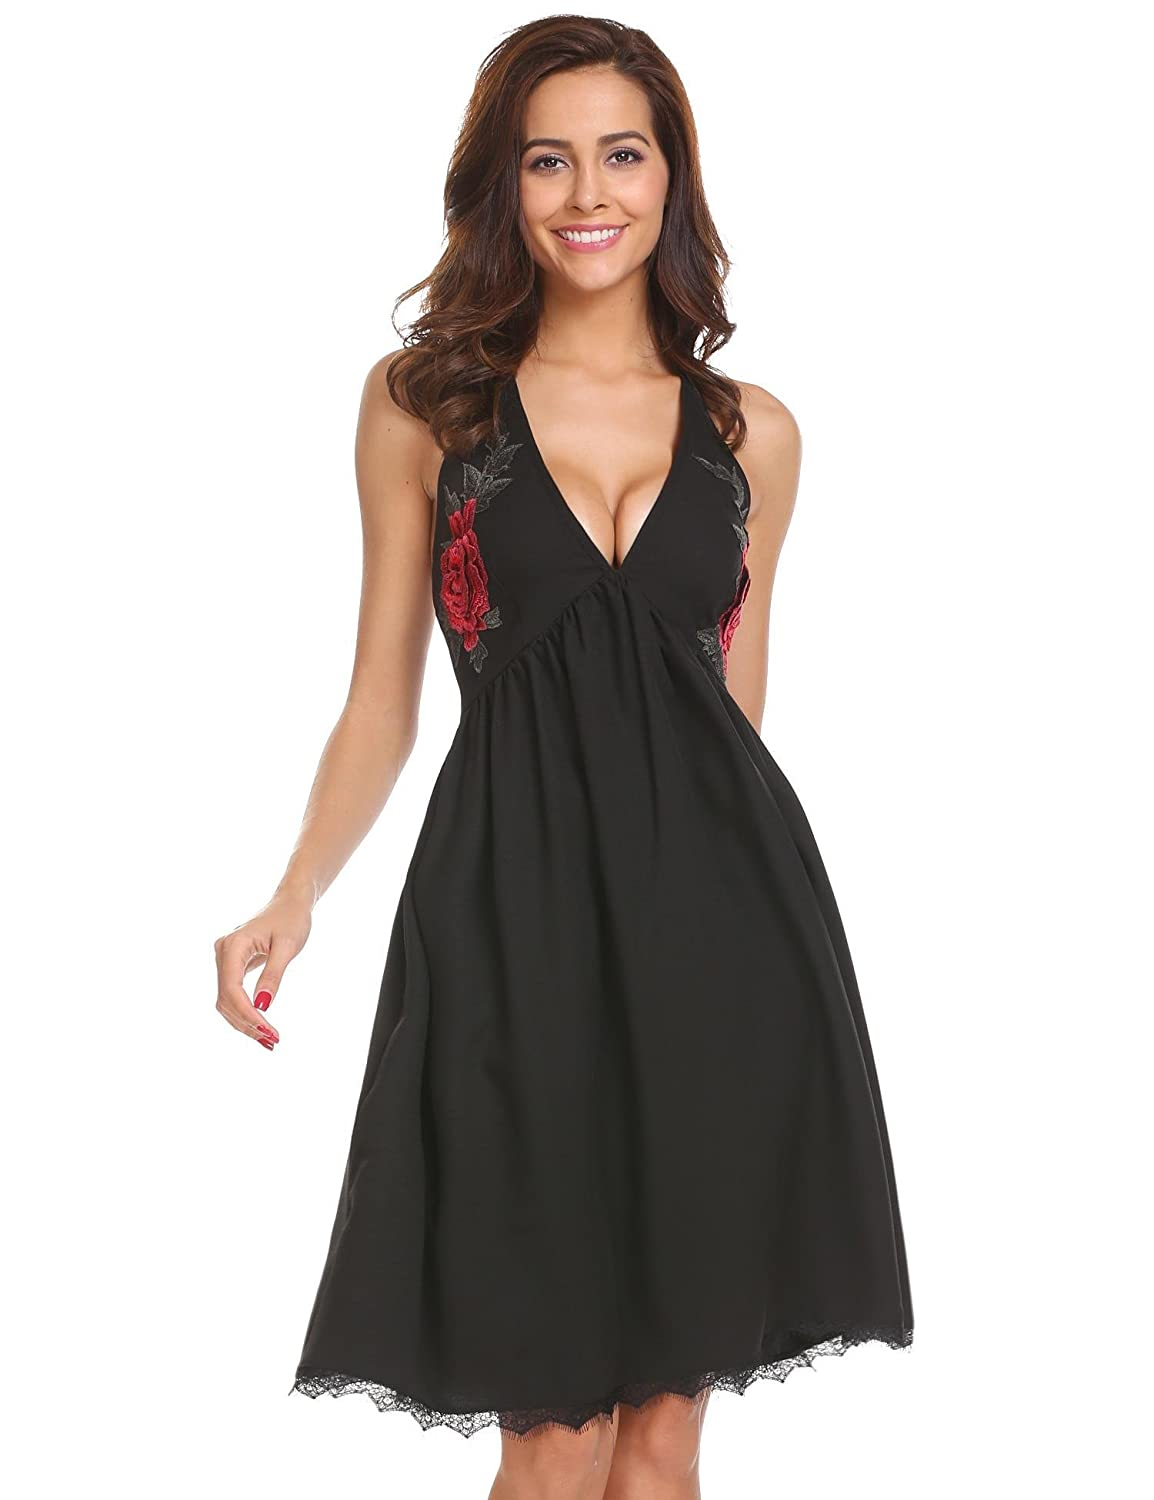 d06a156614 Spaghetti strap, v neck, backless, sleeveless, a line midi dress.  Embroidered floral, lace hem, ruched waist and deep v neck design. Sexy and  elegant